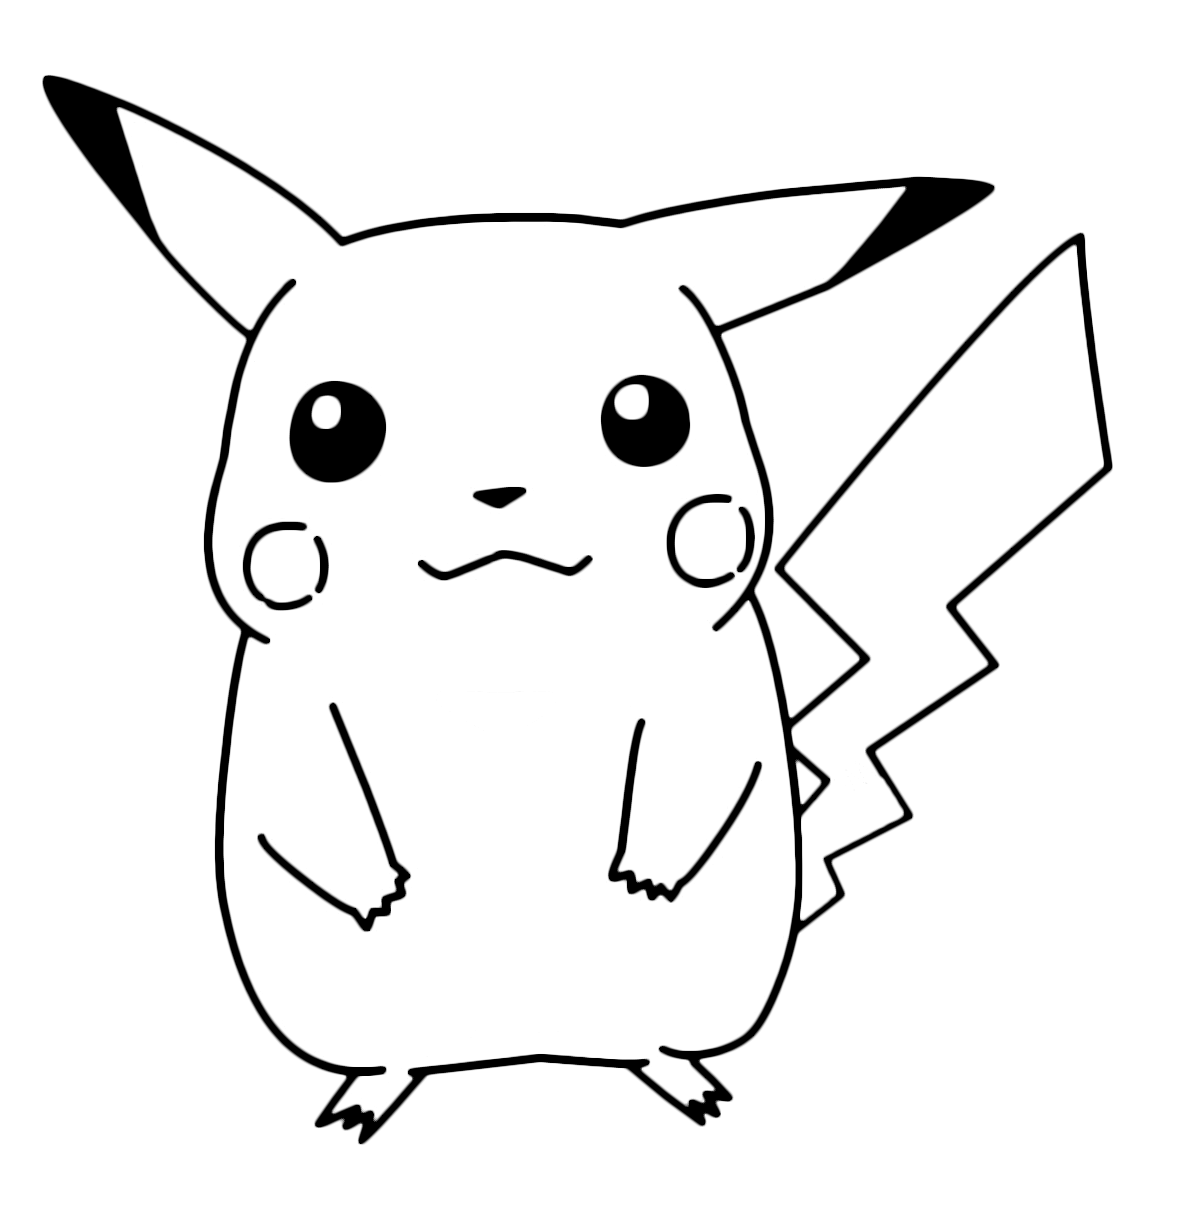 Coloring pages of pokemon pikachu